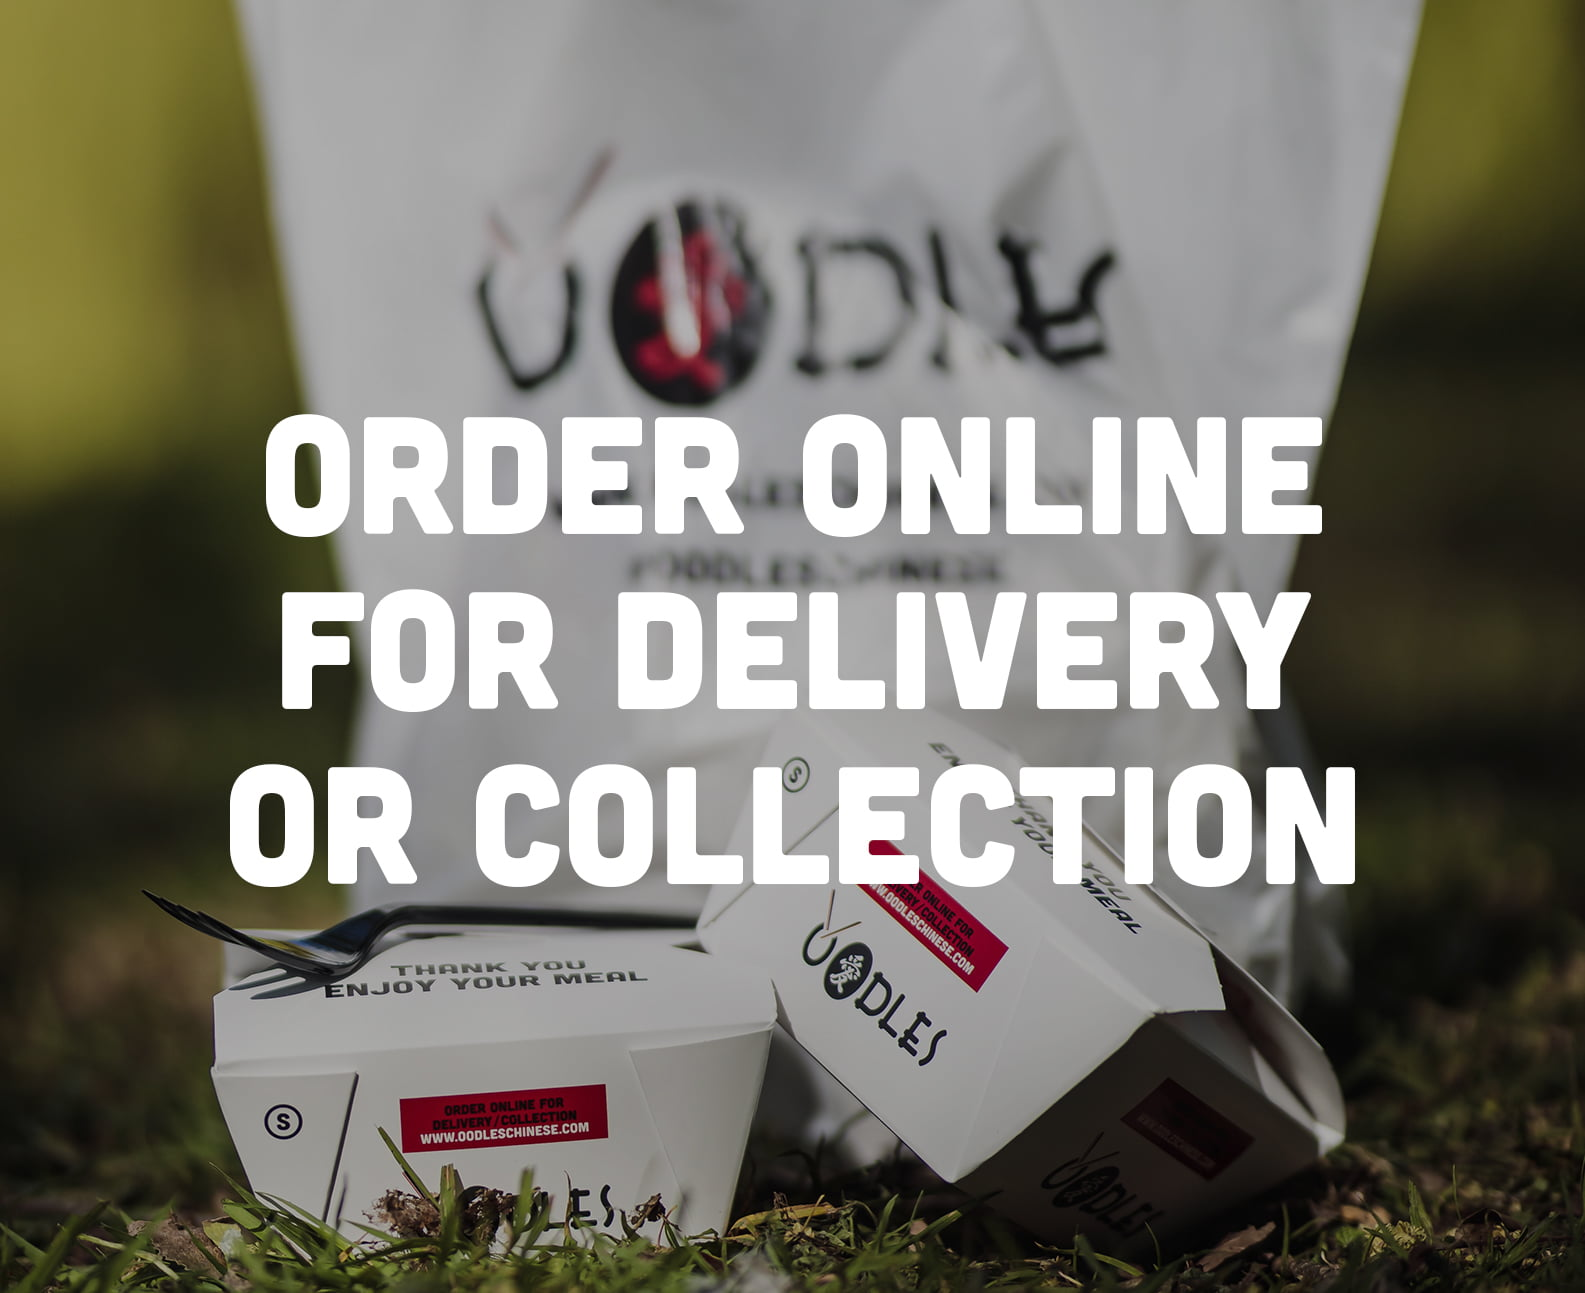 Order online for delivery or collection Oodles